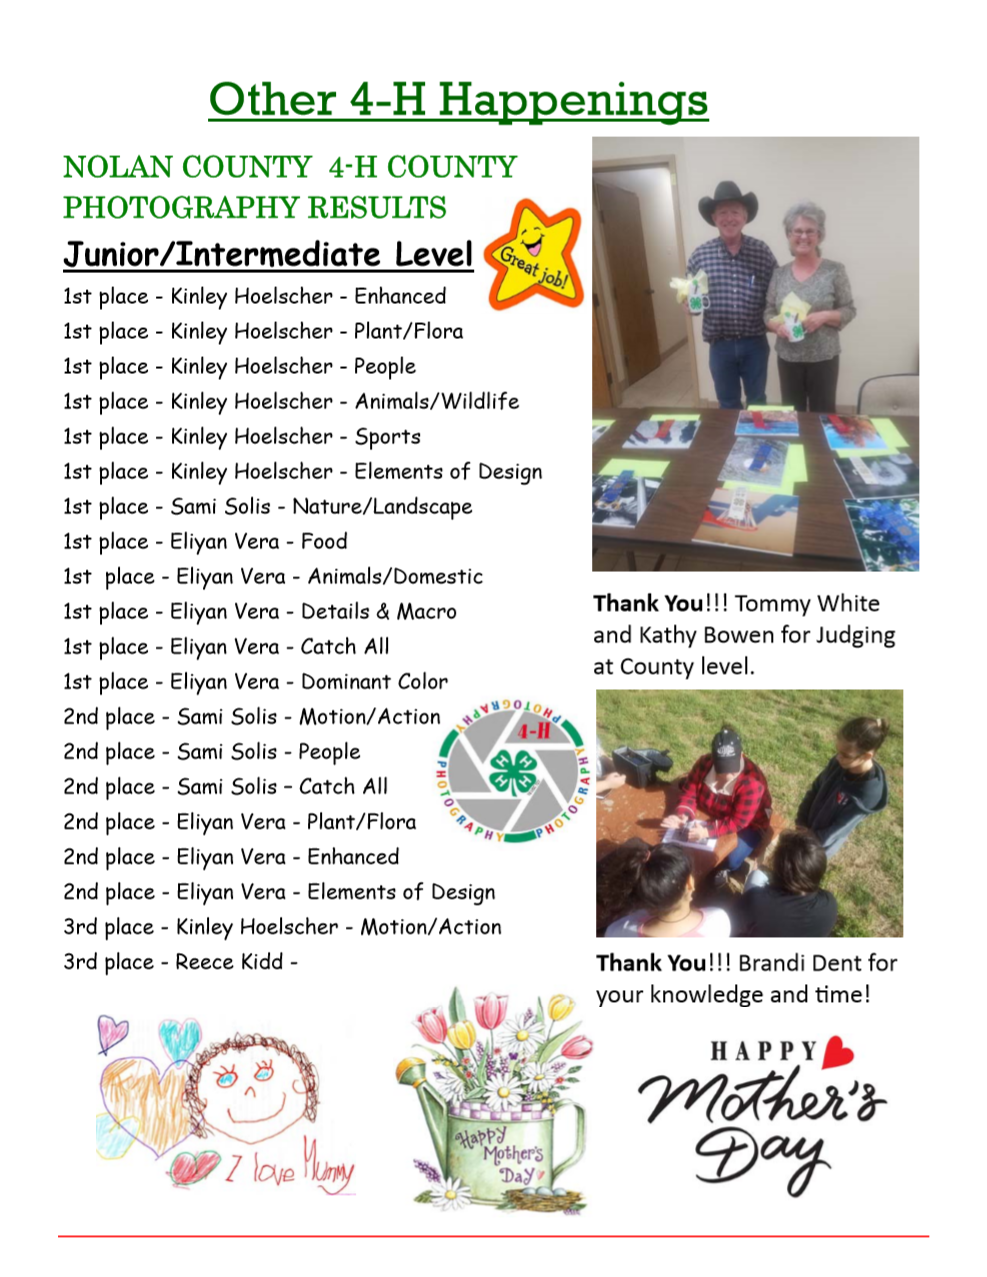 Nolan_County_4-H_Newsletter_May_2019_p4.png